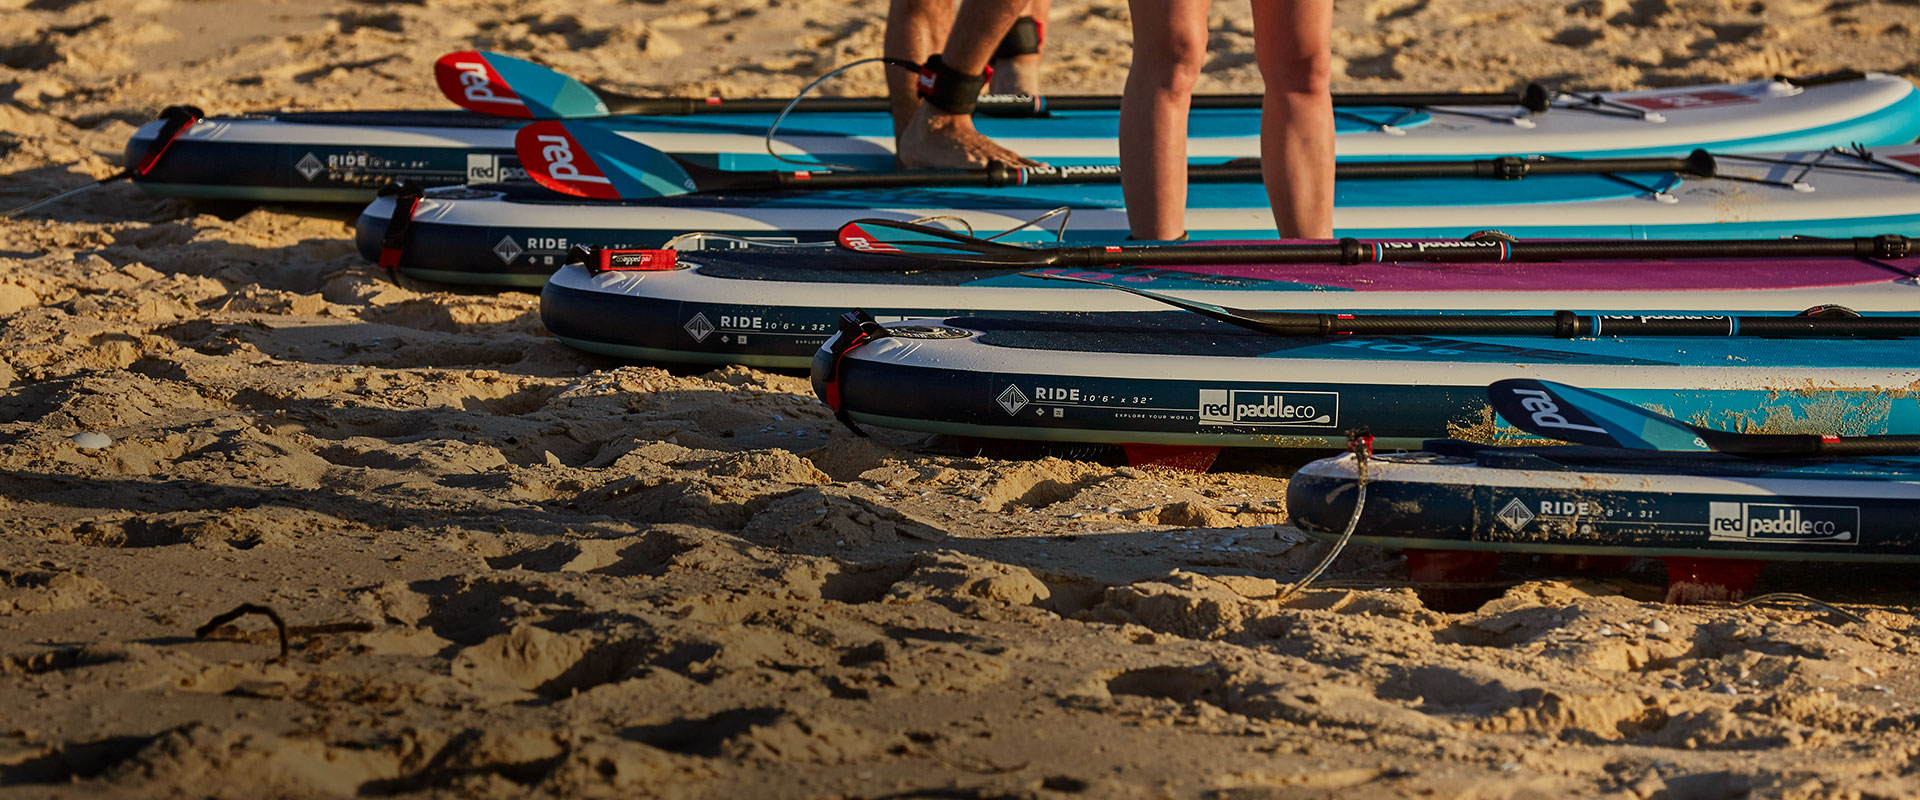 The World's Most Popular Inflatable Stand Up Paddle Boards